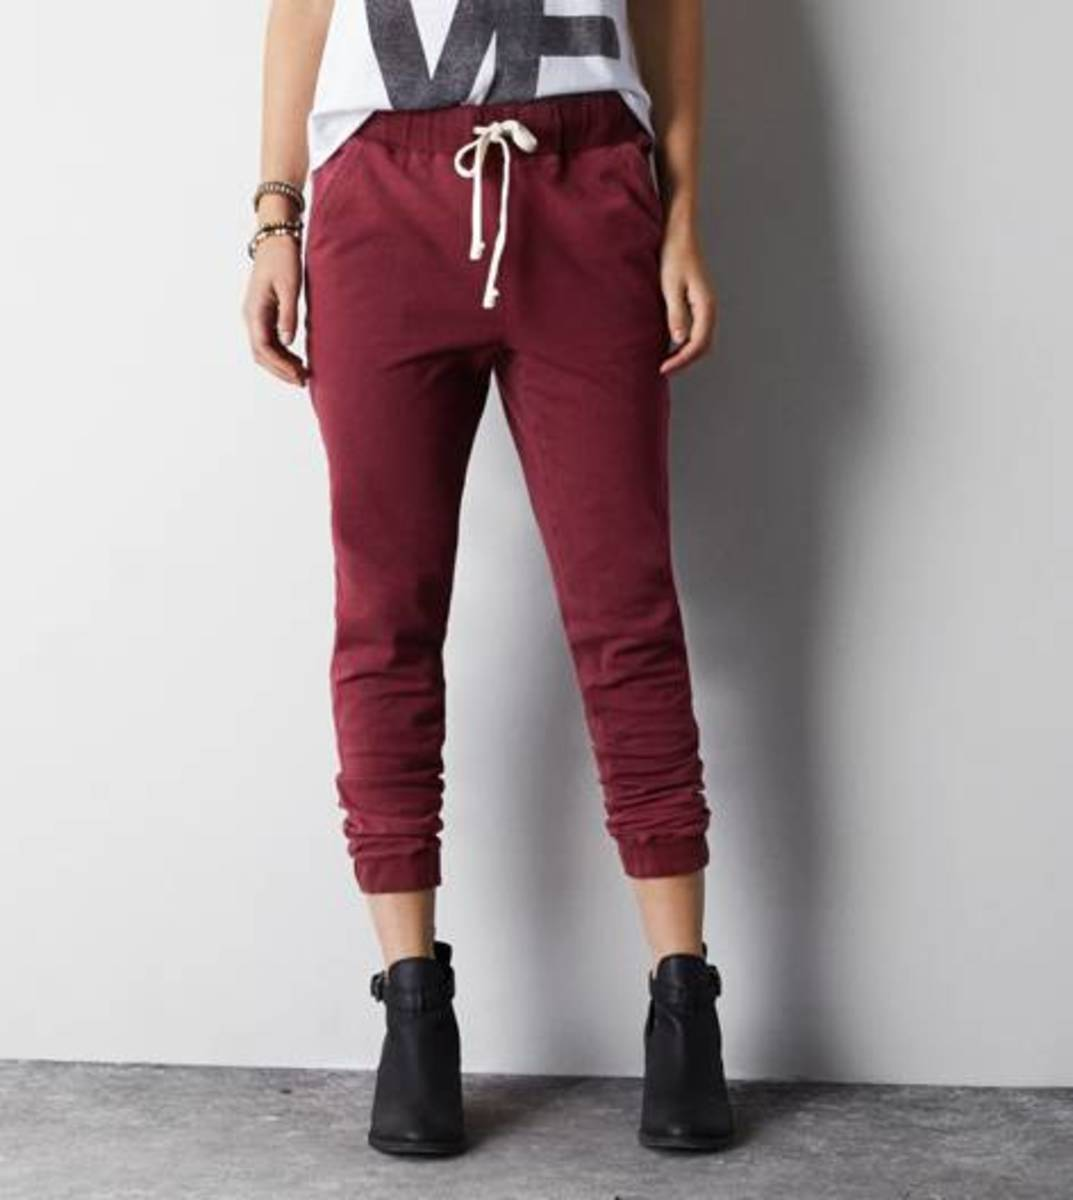 New Denim Joggers Outfit Casual Pants How To Wear Joggers Pacsun Outfits